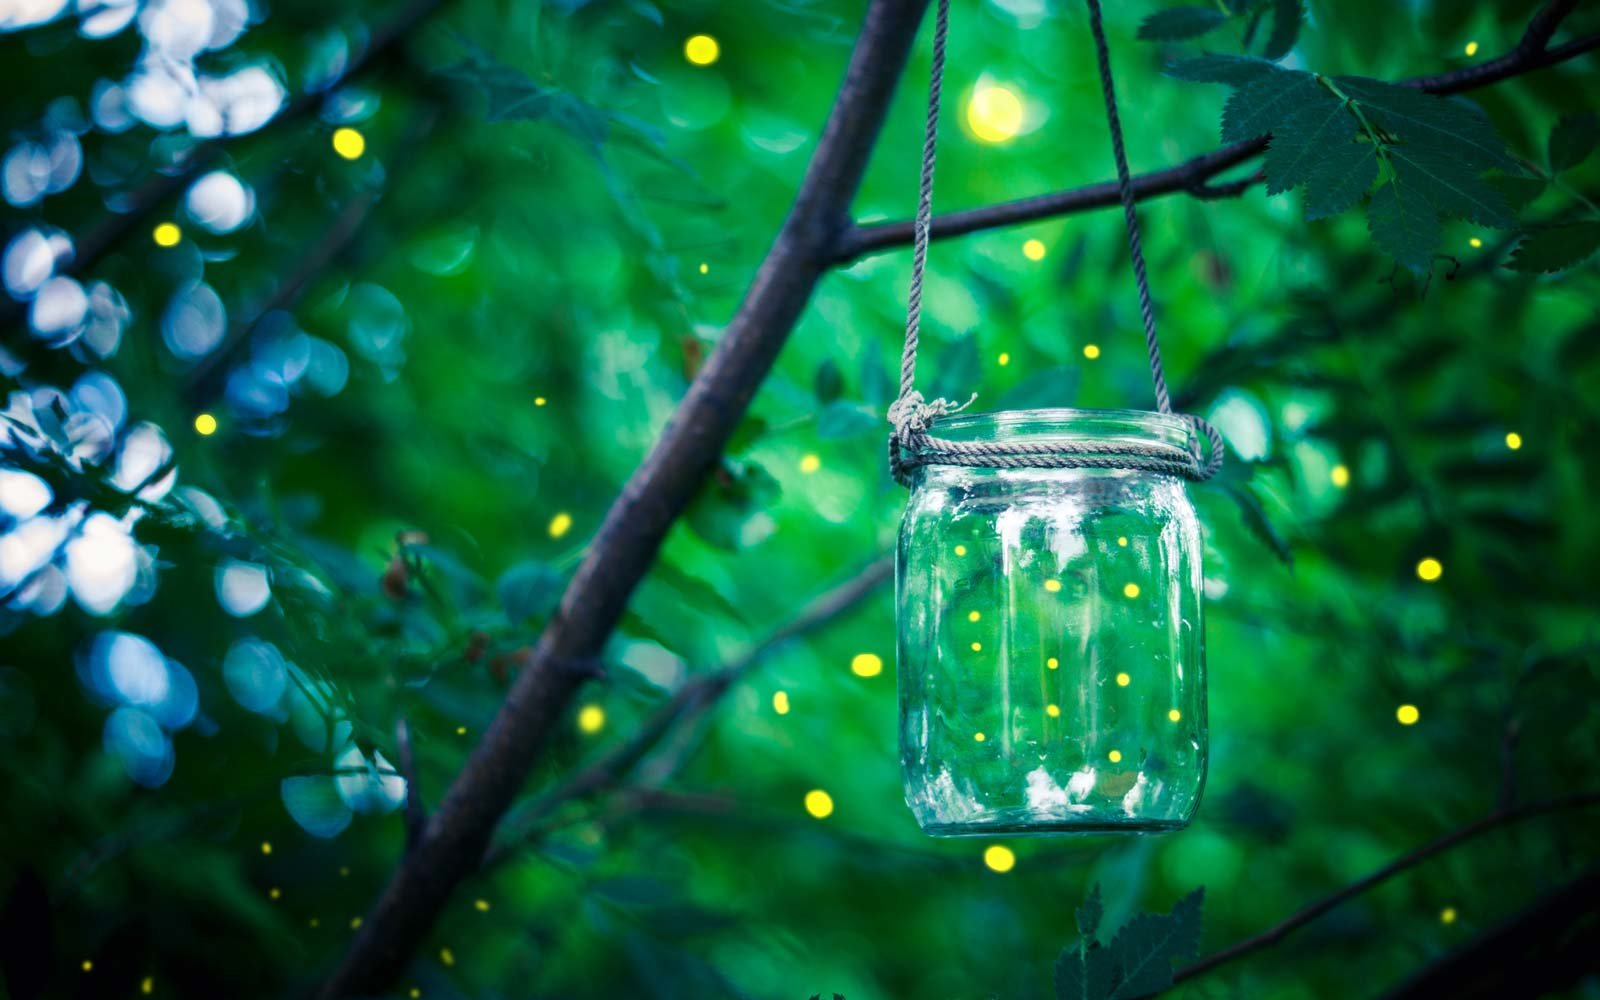 How to Make Your Backyard Firefly-friendly